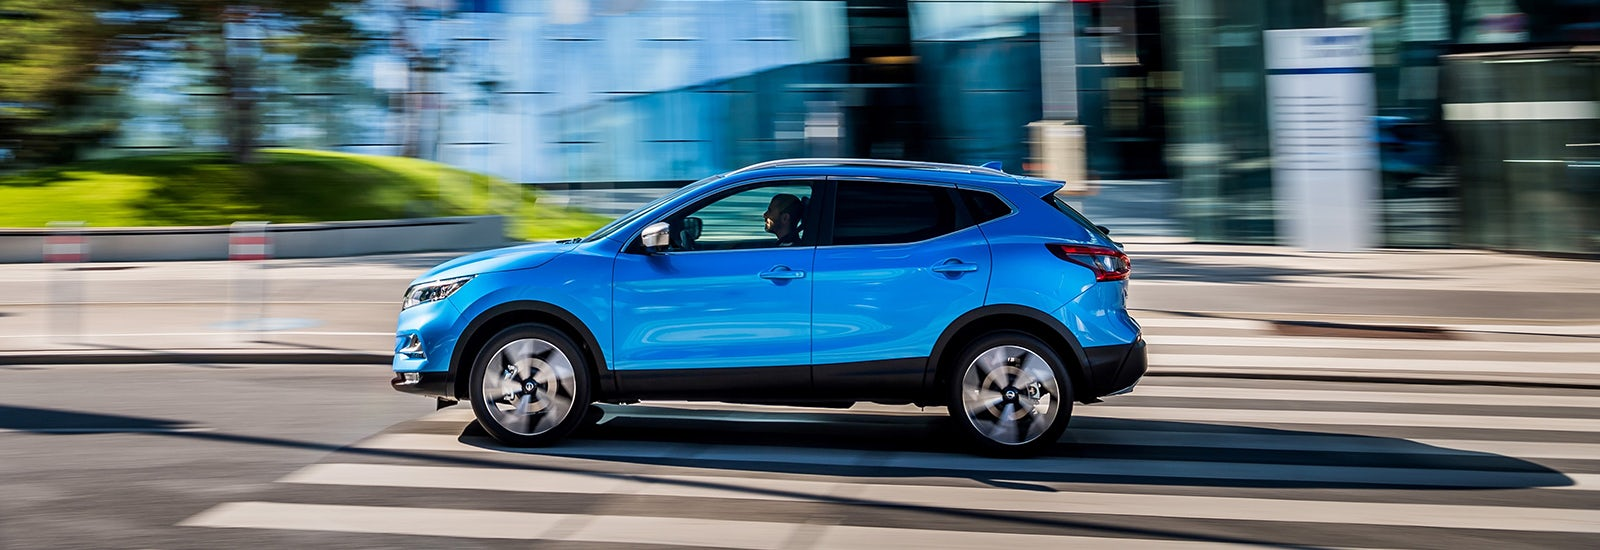 new car releases uk2017 Nissan Qashqai facelift price specs release date  carwow